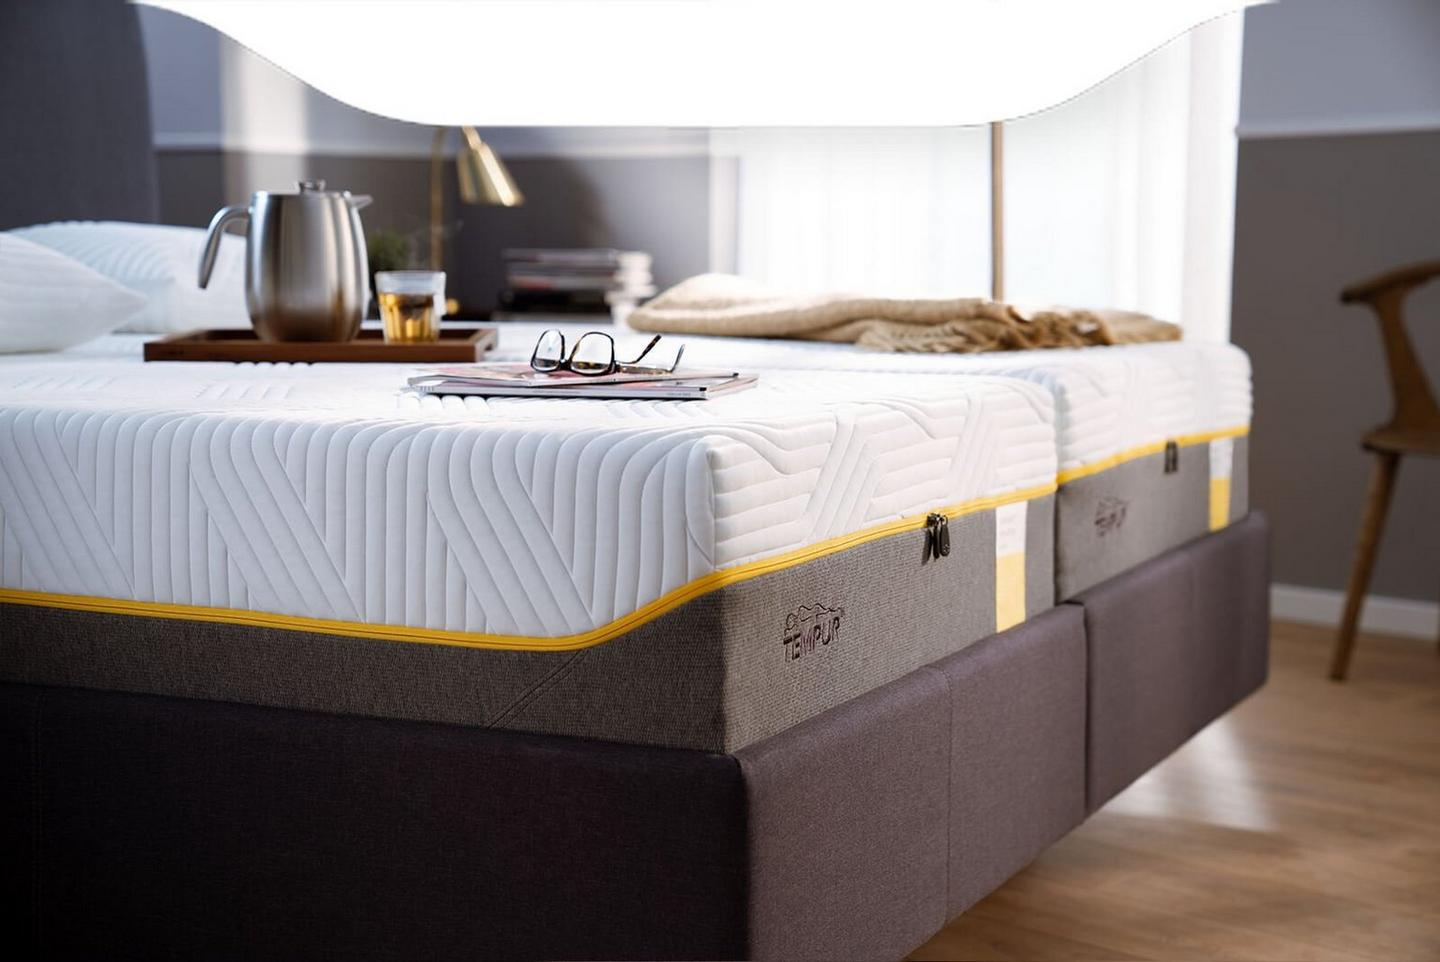 Tempur firm sensation mattress range